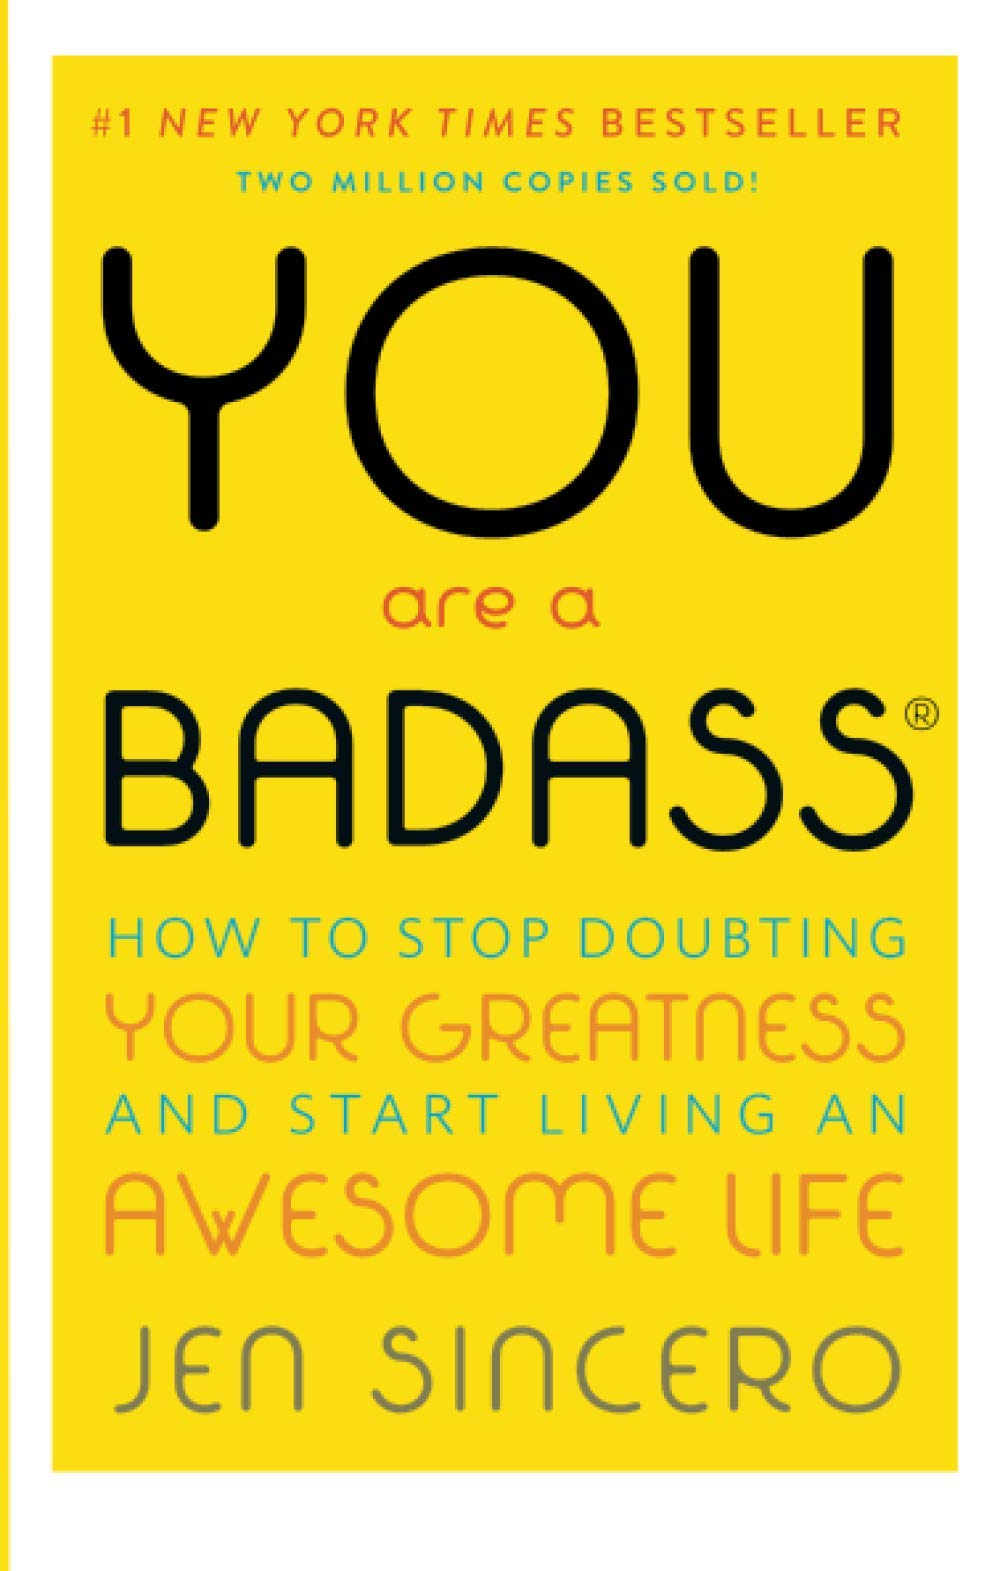 You Are a Badass: How to Stop Doubting Your Greatness and Start Living an Awesome Life WeeklyReviewer